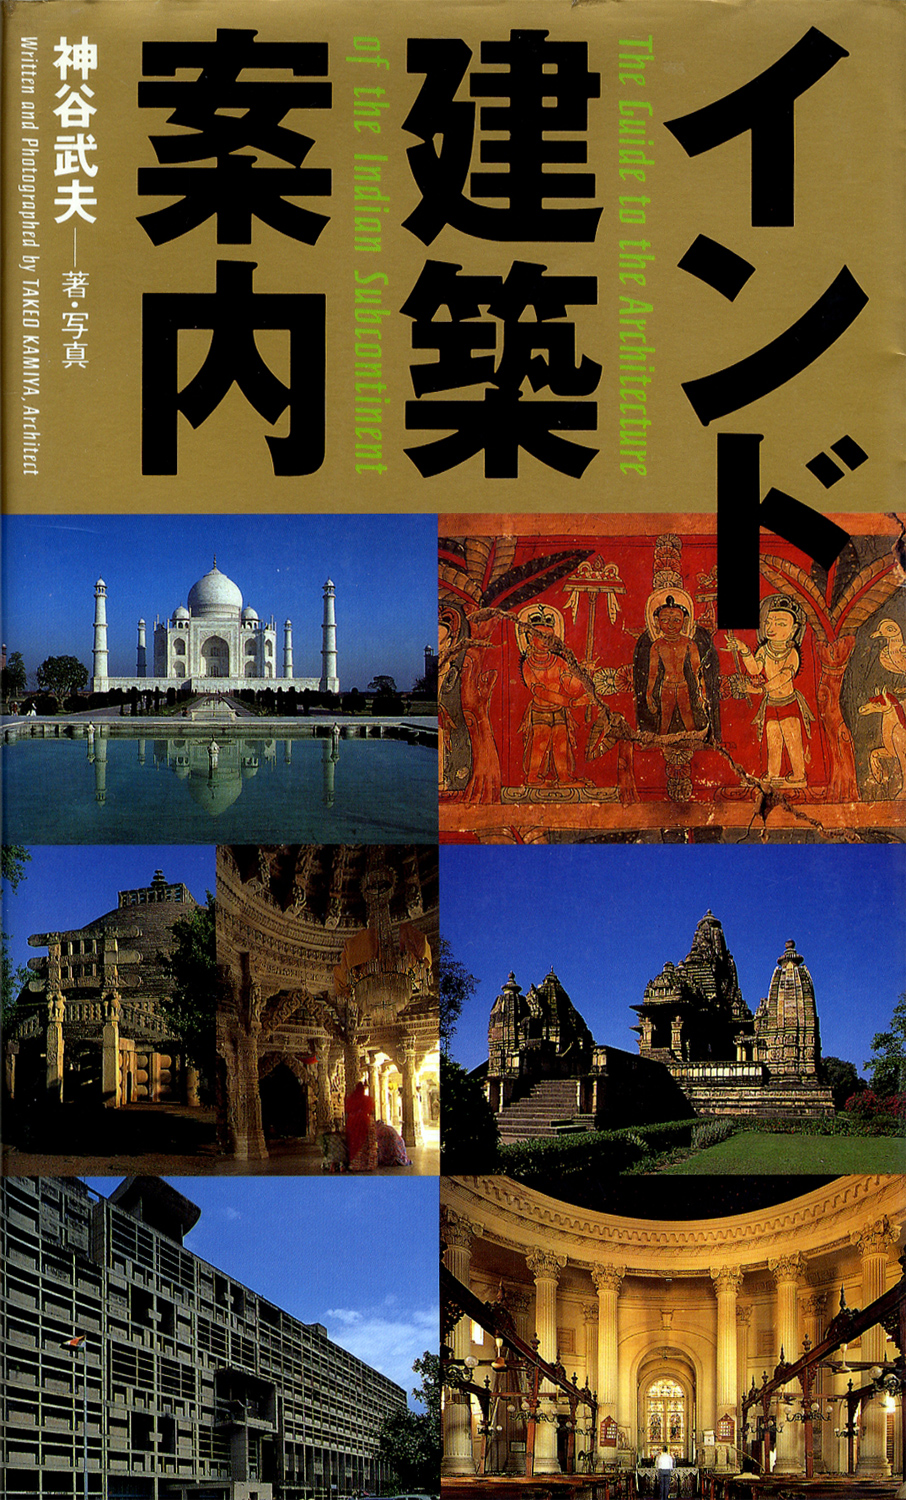 インド建築案内 The Guide to the Architecture of the Indian Subcontinent